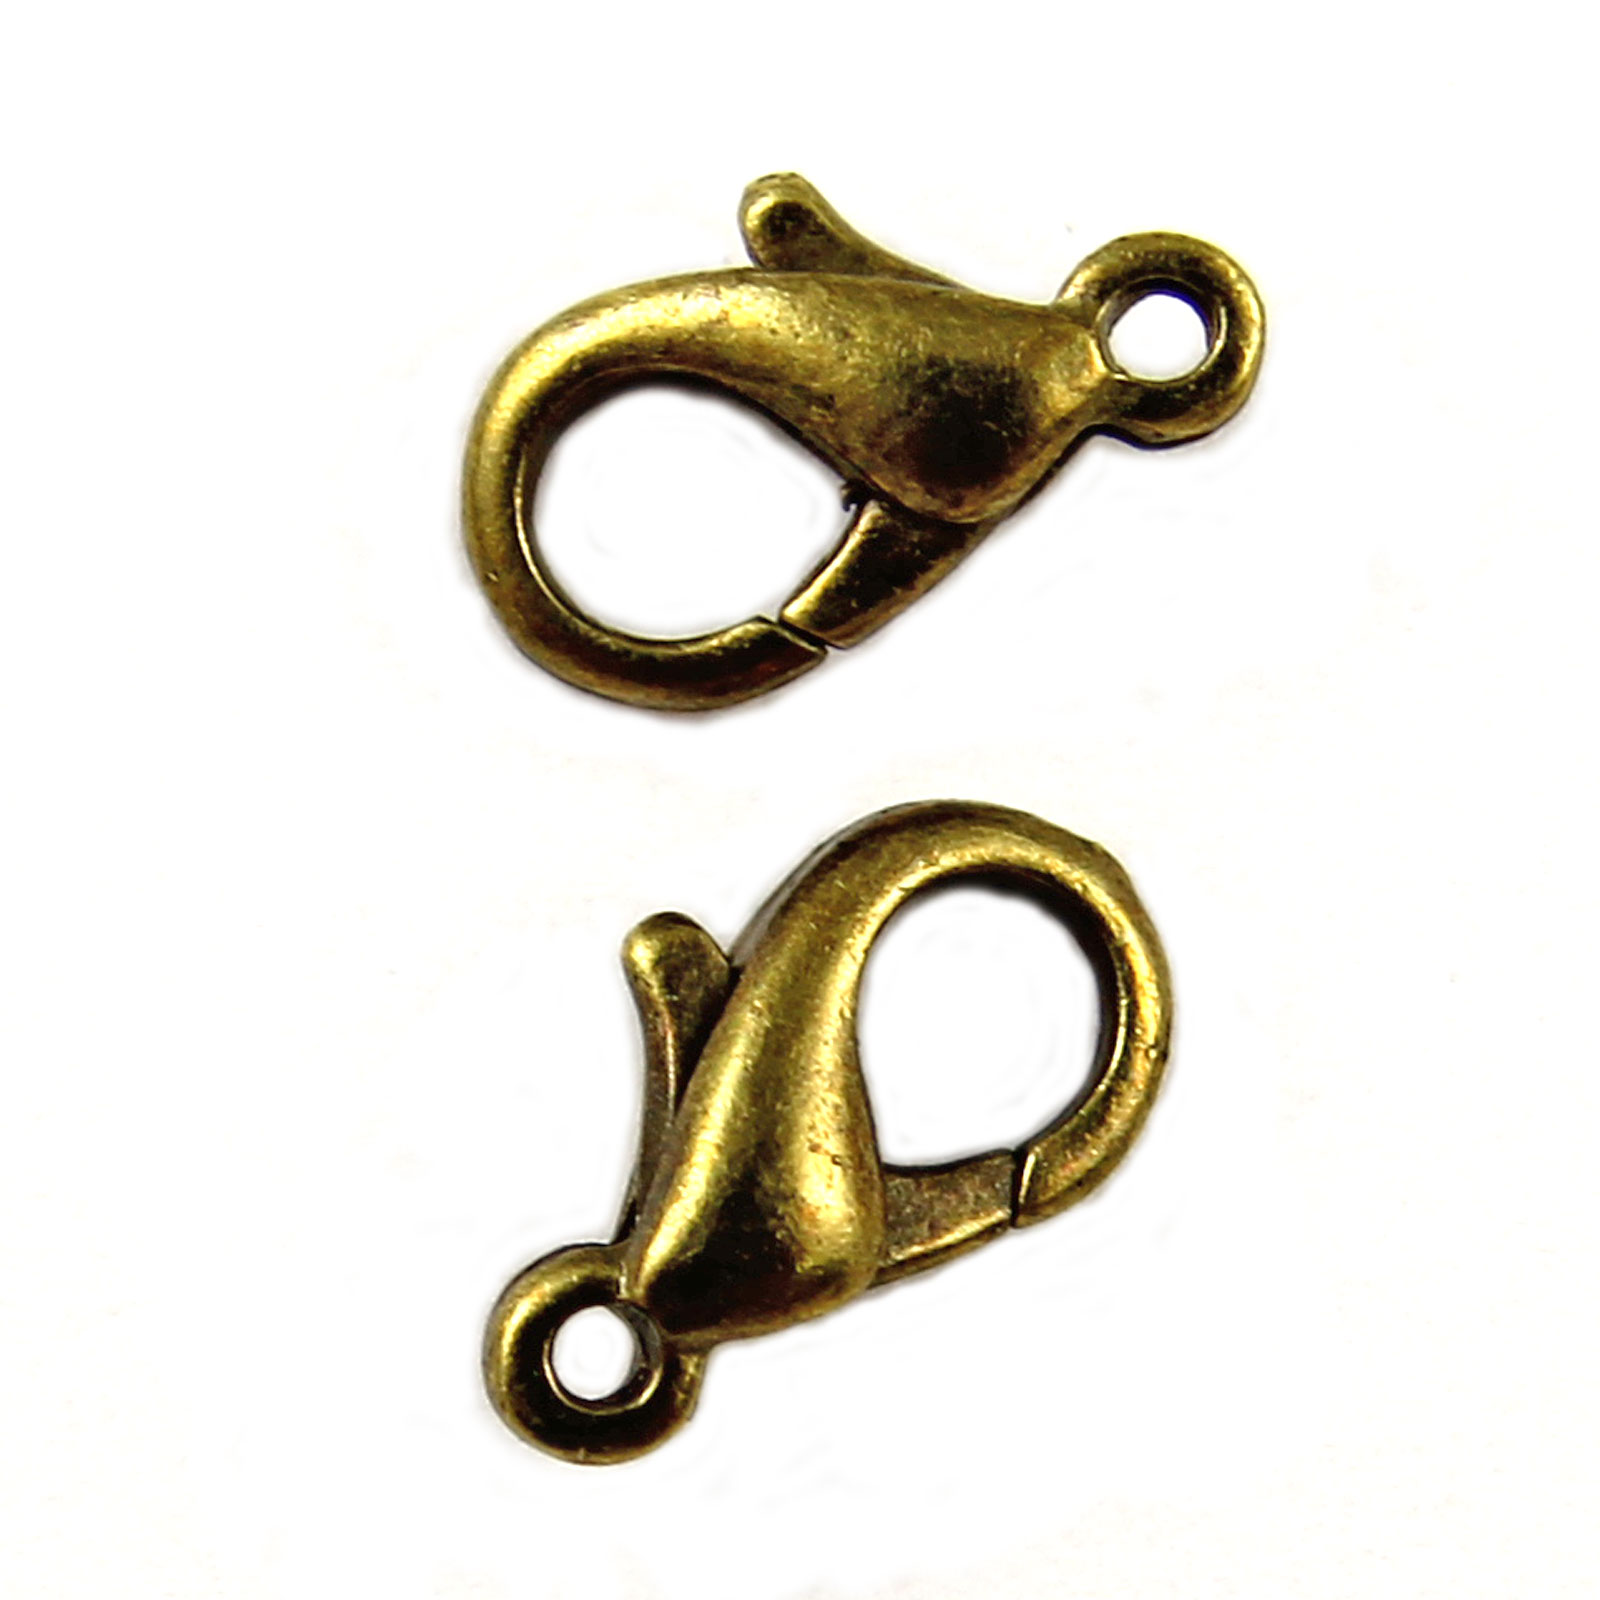 50-Metal-LOBSTER-CLAW-CLASPS-Bronze-Gold-amp-SILVER-PLATED-10mm-12mm-amp-14mm